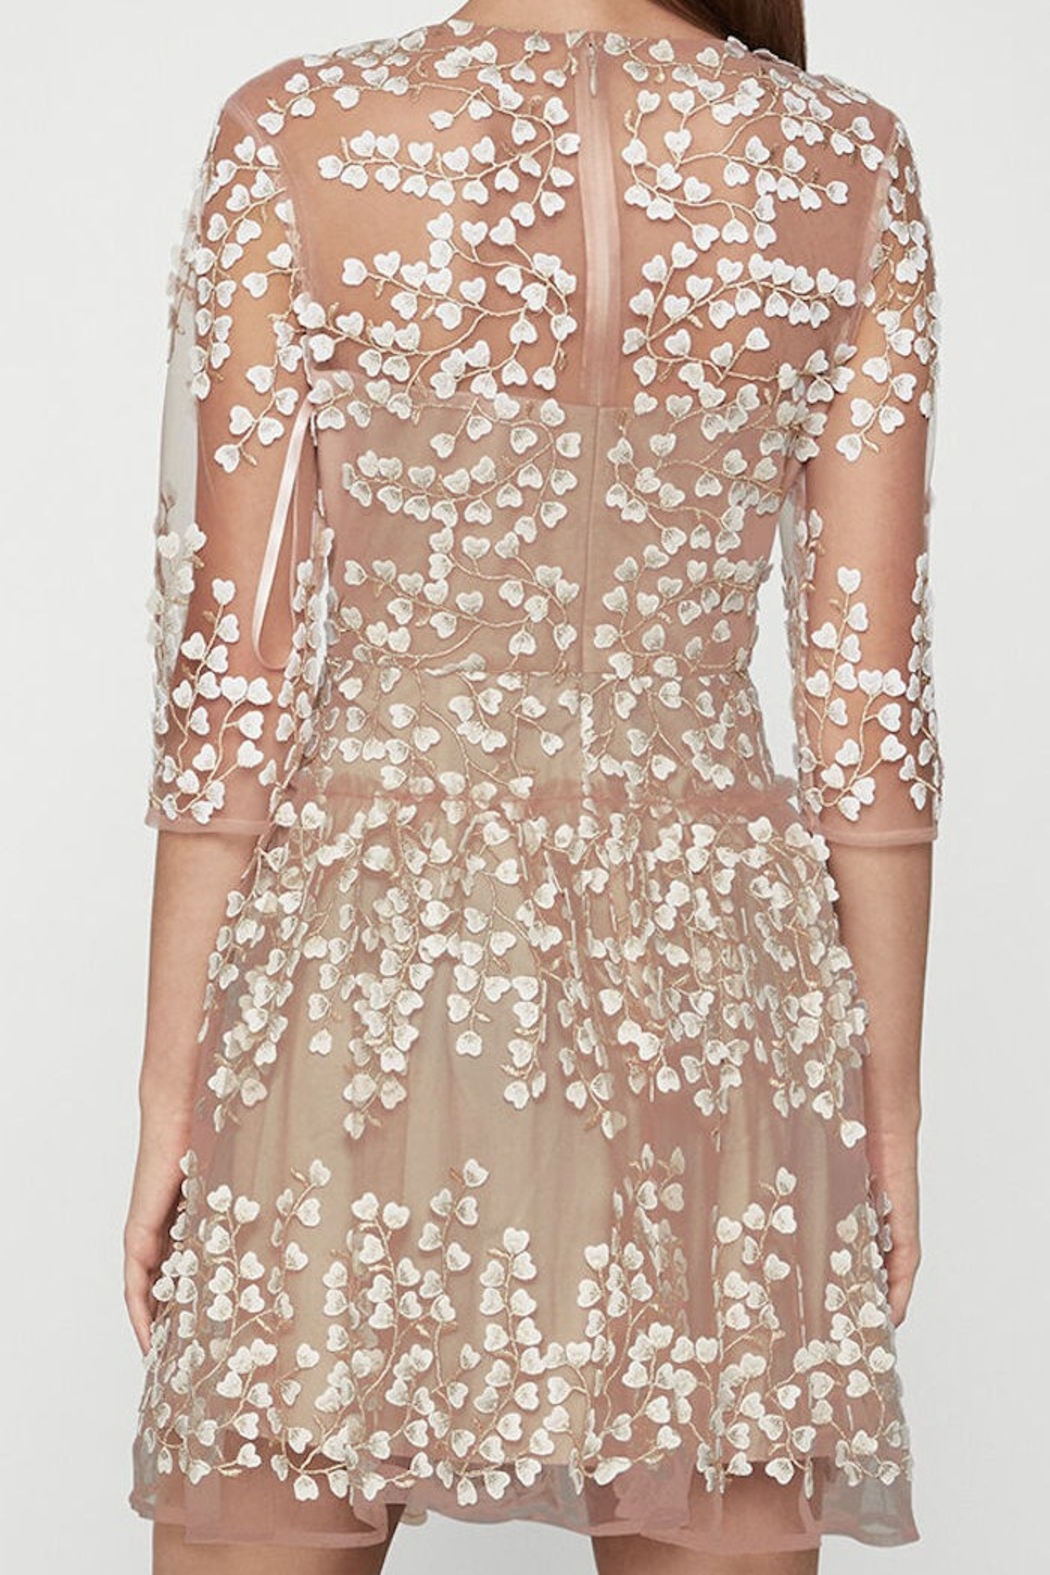 BCBG MAXAZRIA Embroidered A-Line Dress - Front Full Image